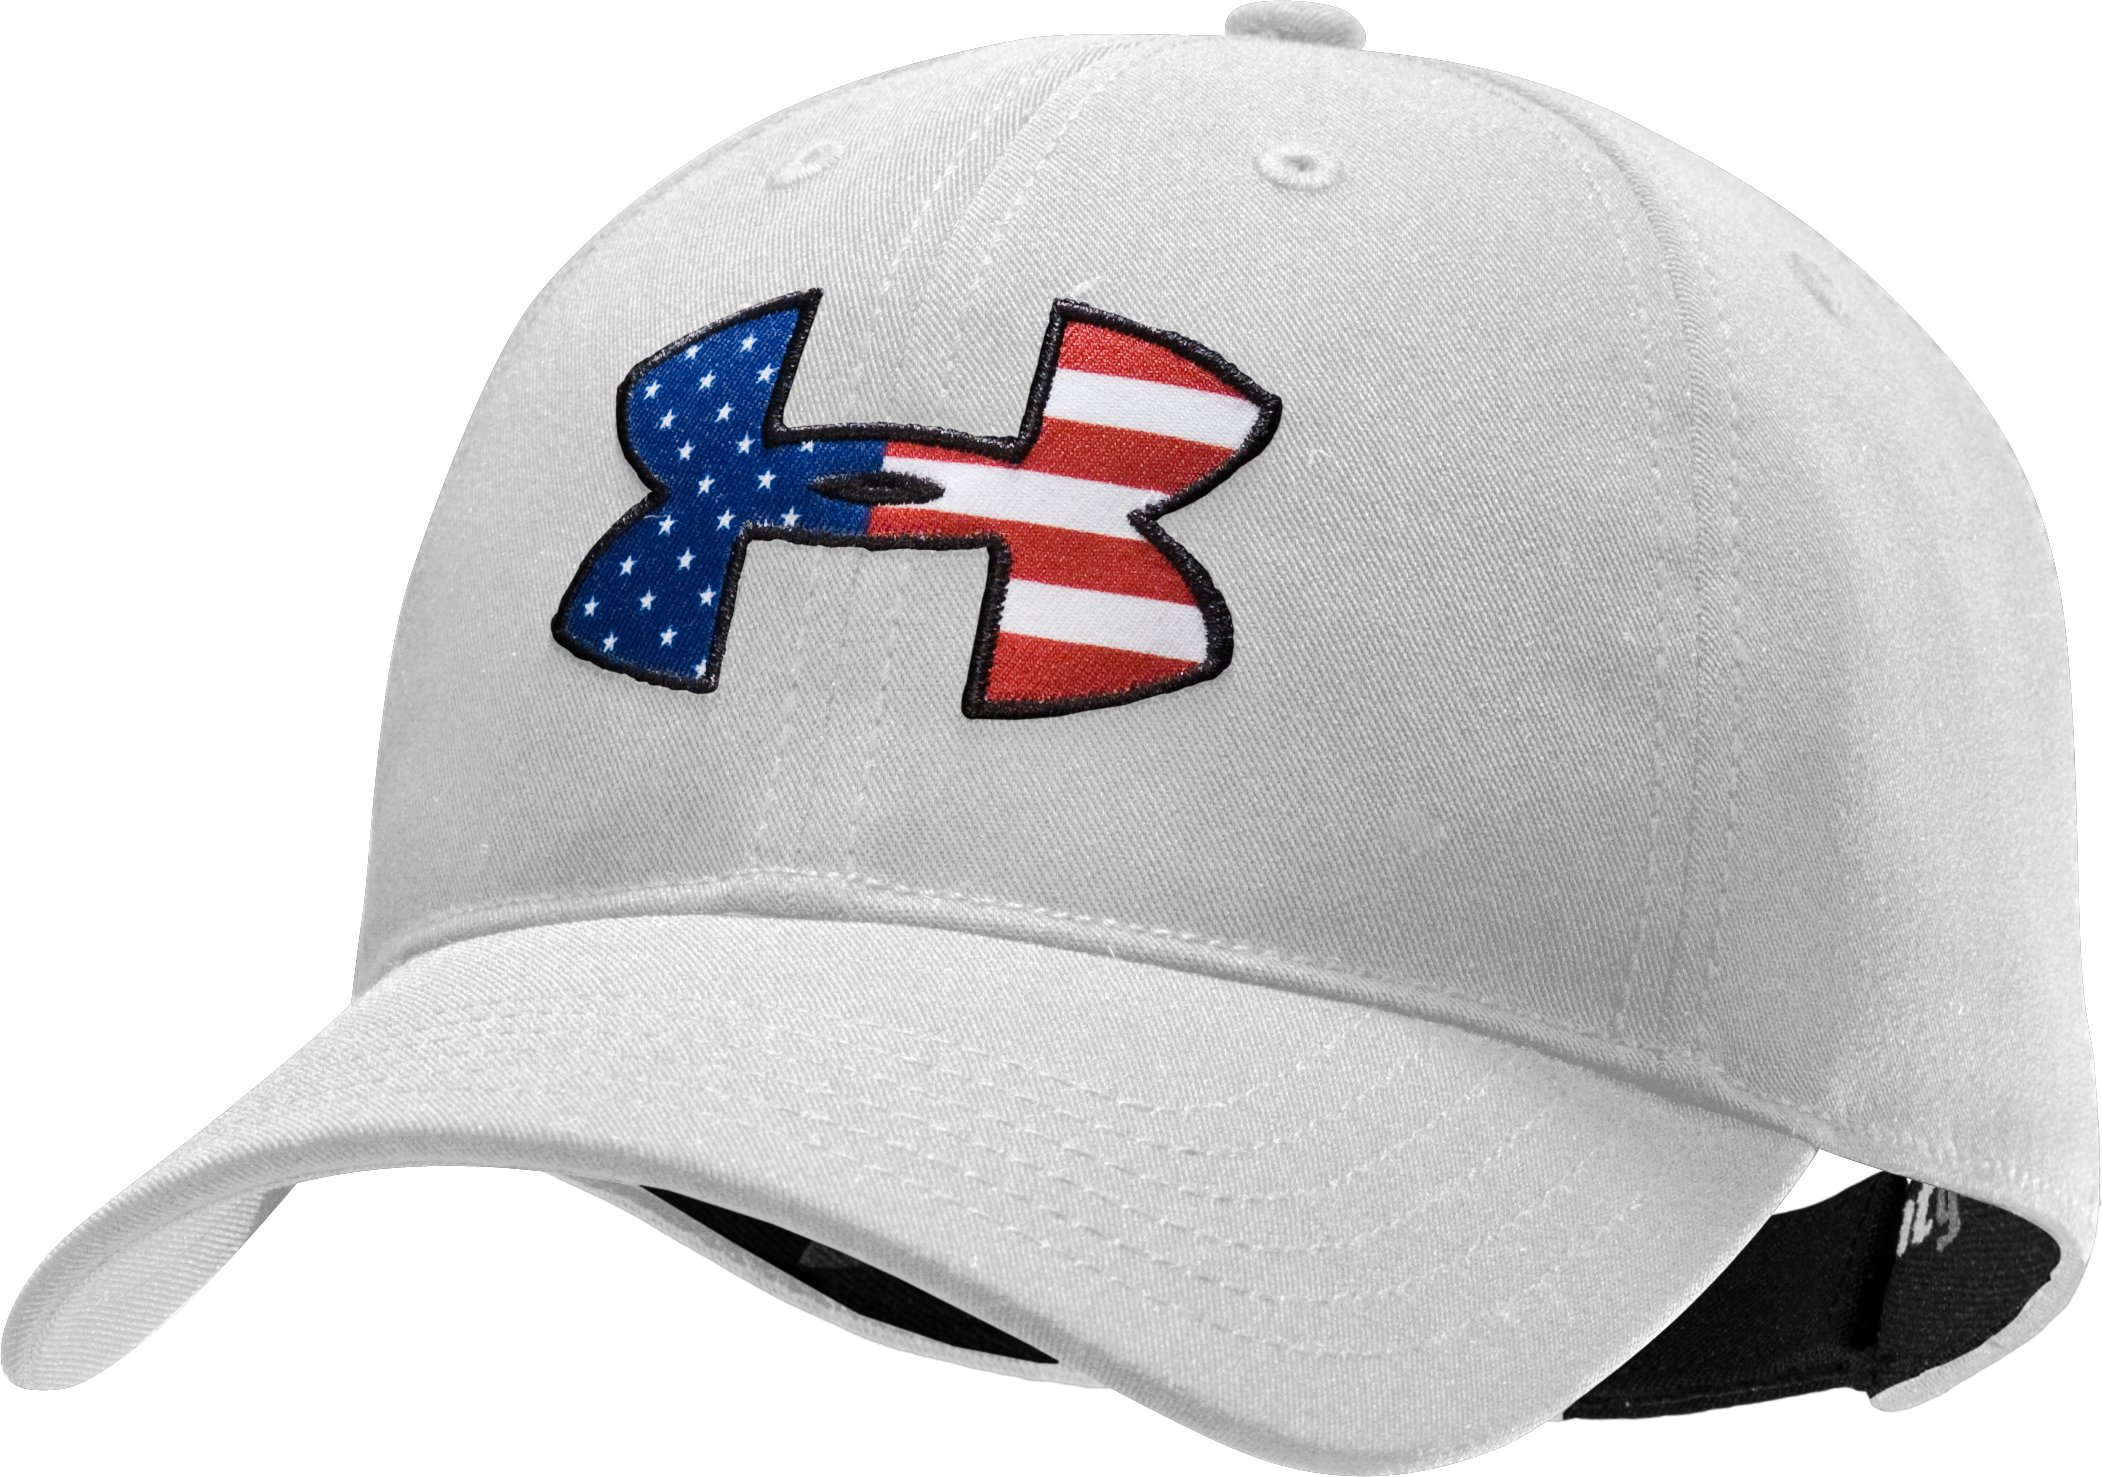 Men's Big Flag Logo Adjustable Cap, White